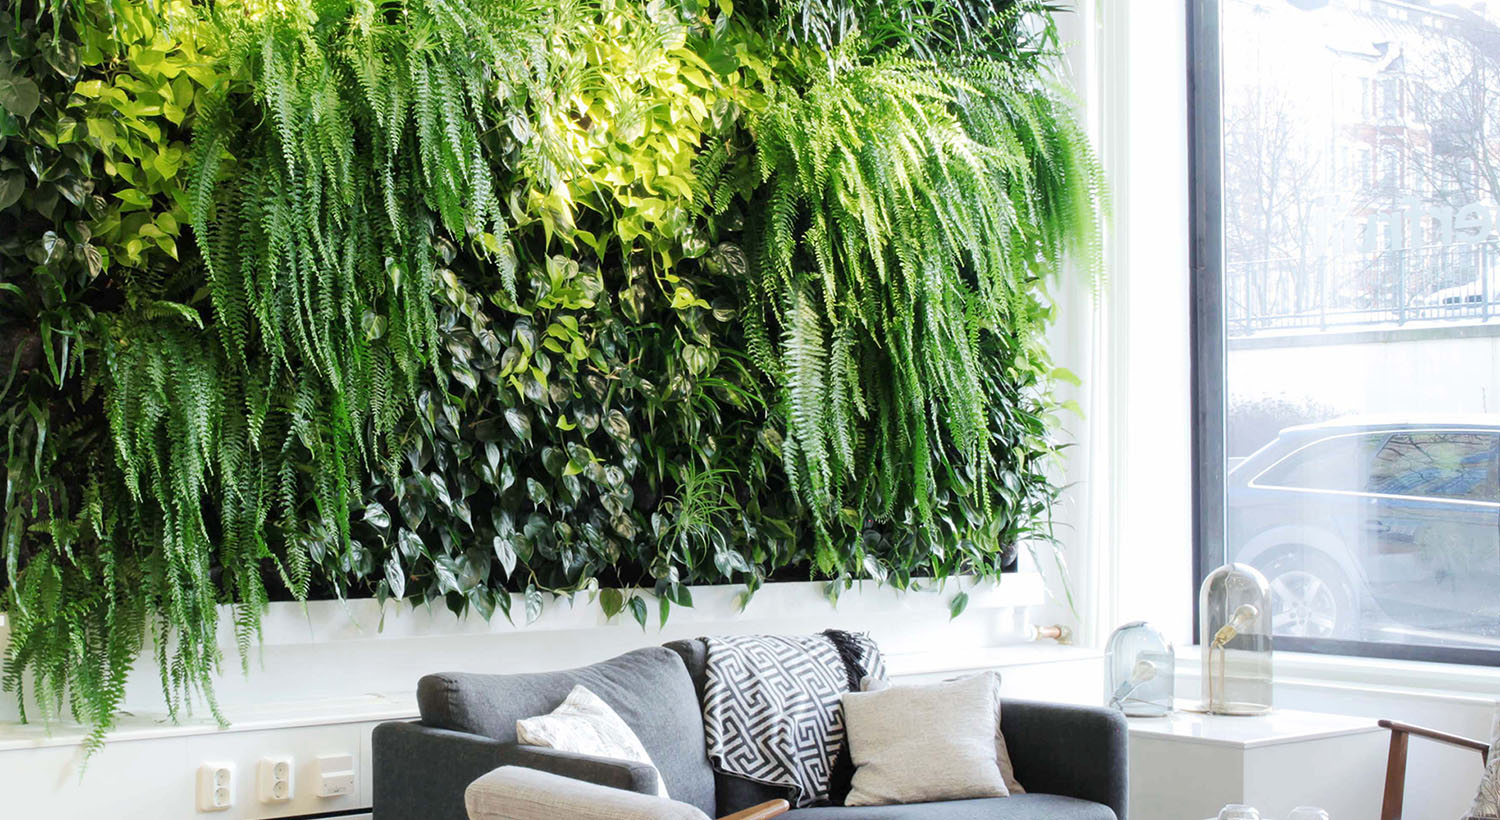 Hydroponic Green Wall Picture